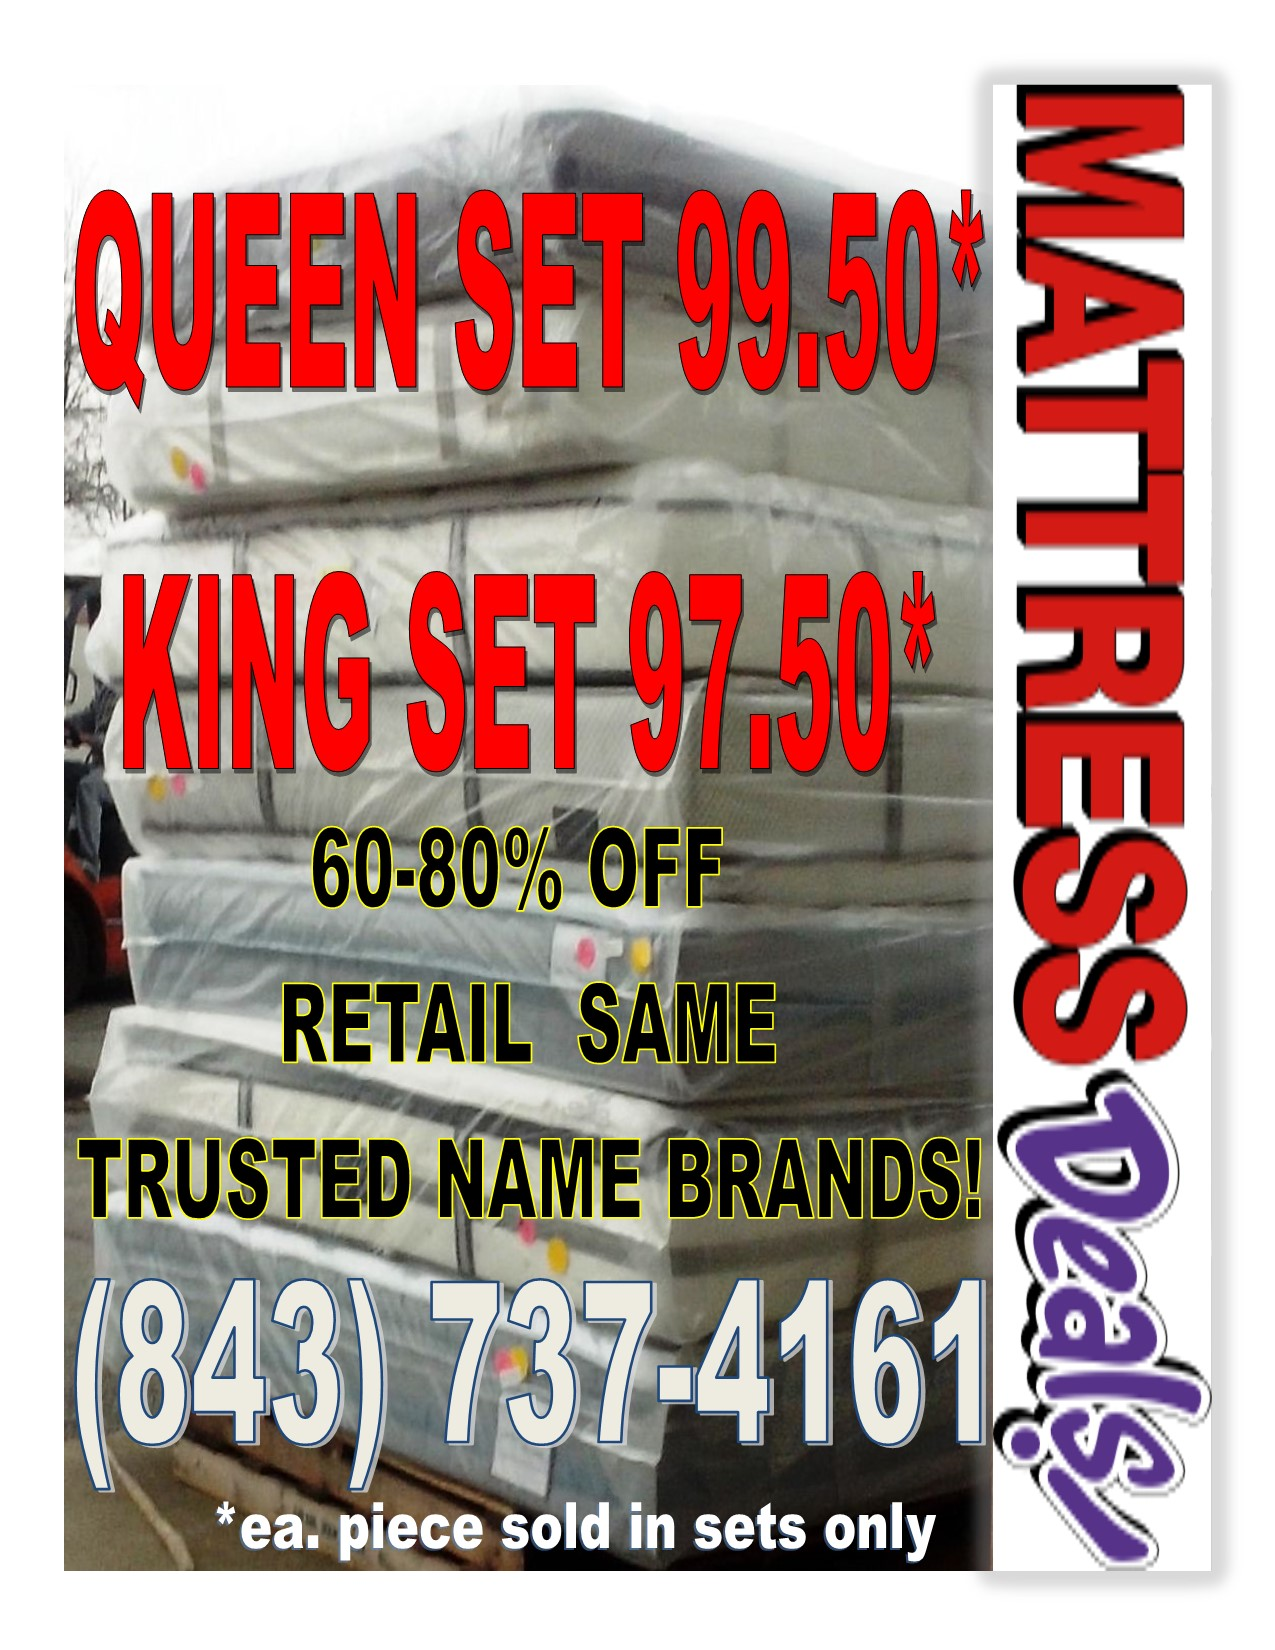 Mattress Deals image 34